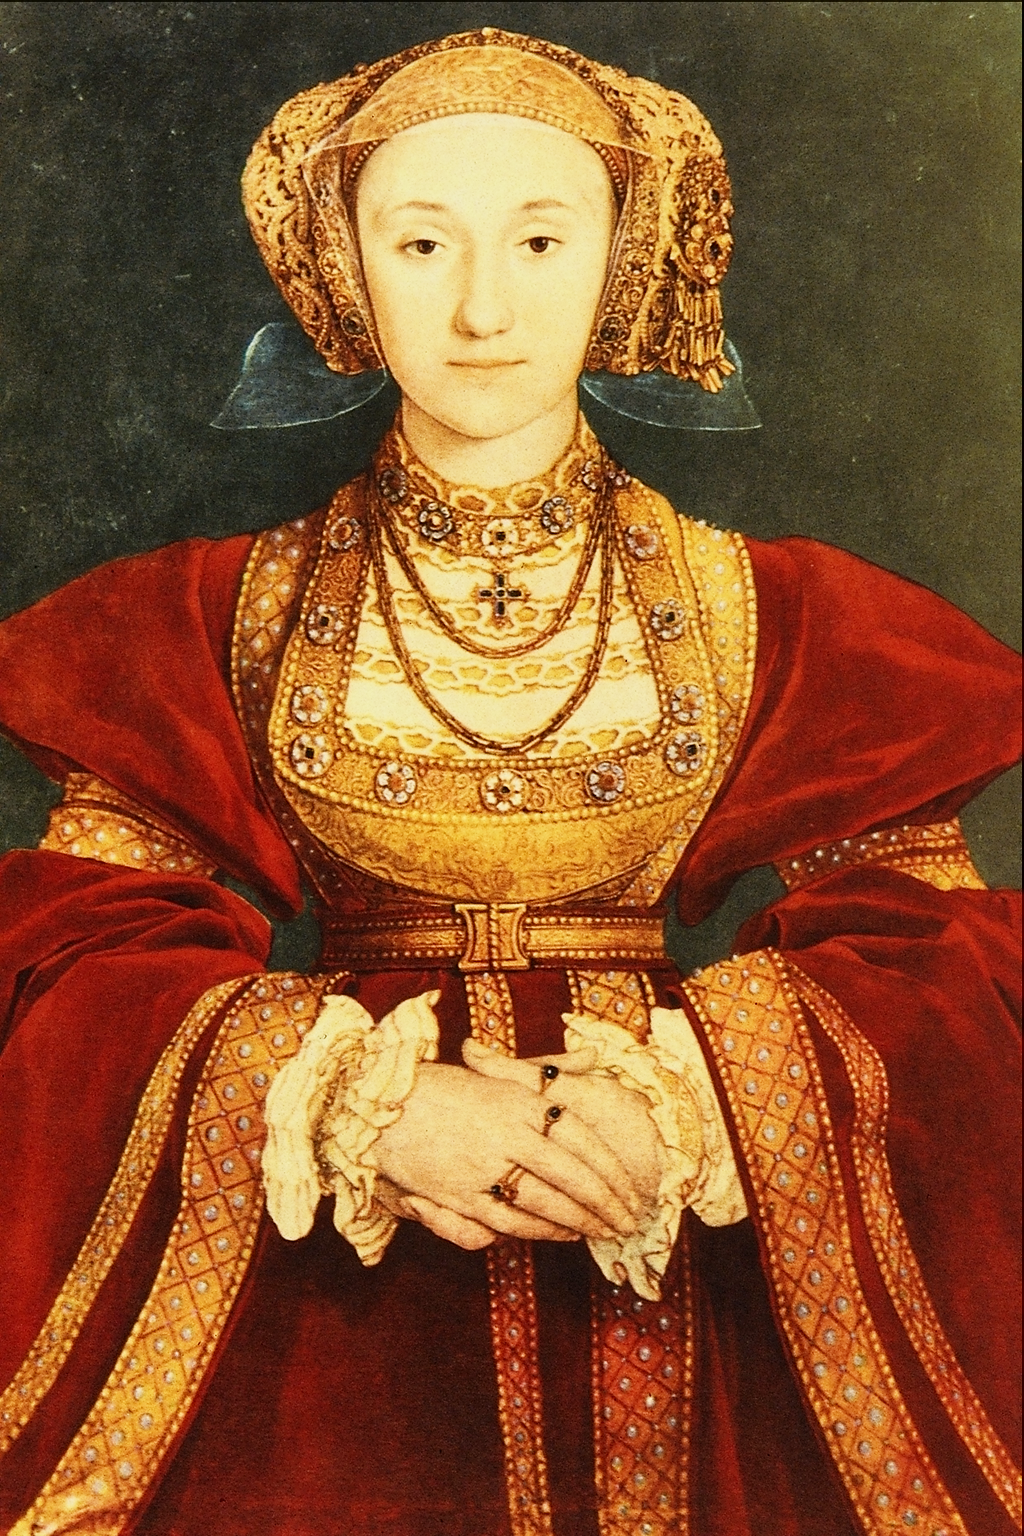 File:Anne of Cleves - Hans Holbein the Younger.png: commons.wikimedia.org/wiki/File:Anne_of_Cleves_-_Hans_Holbein_the...